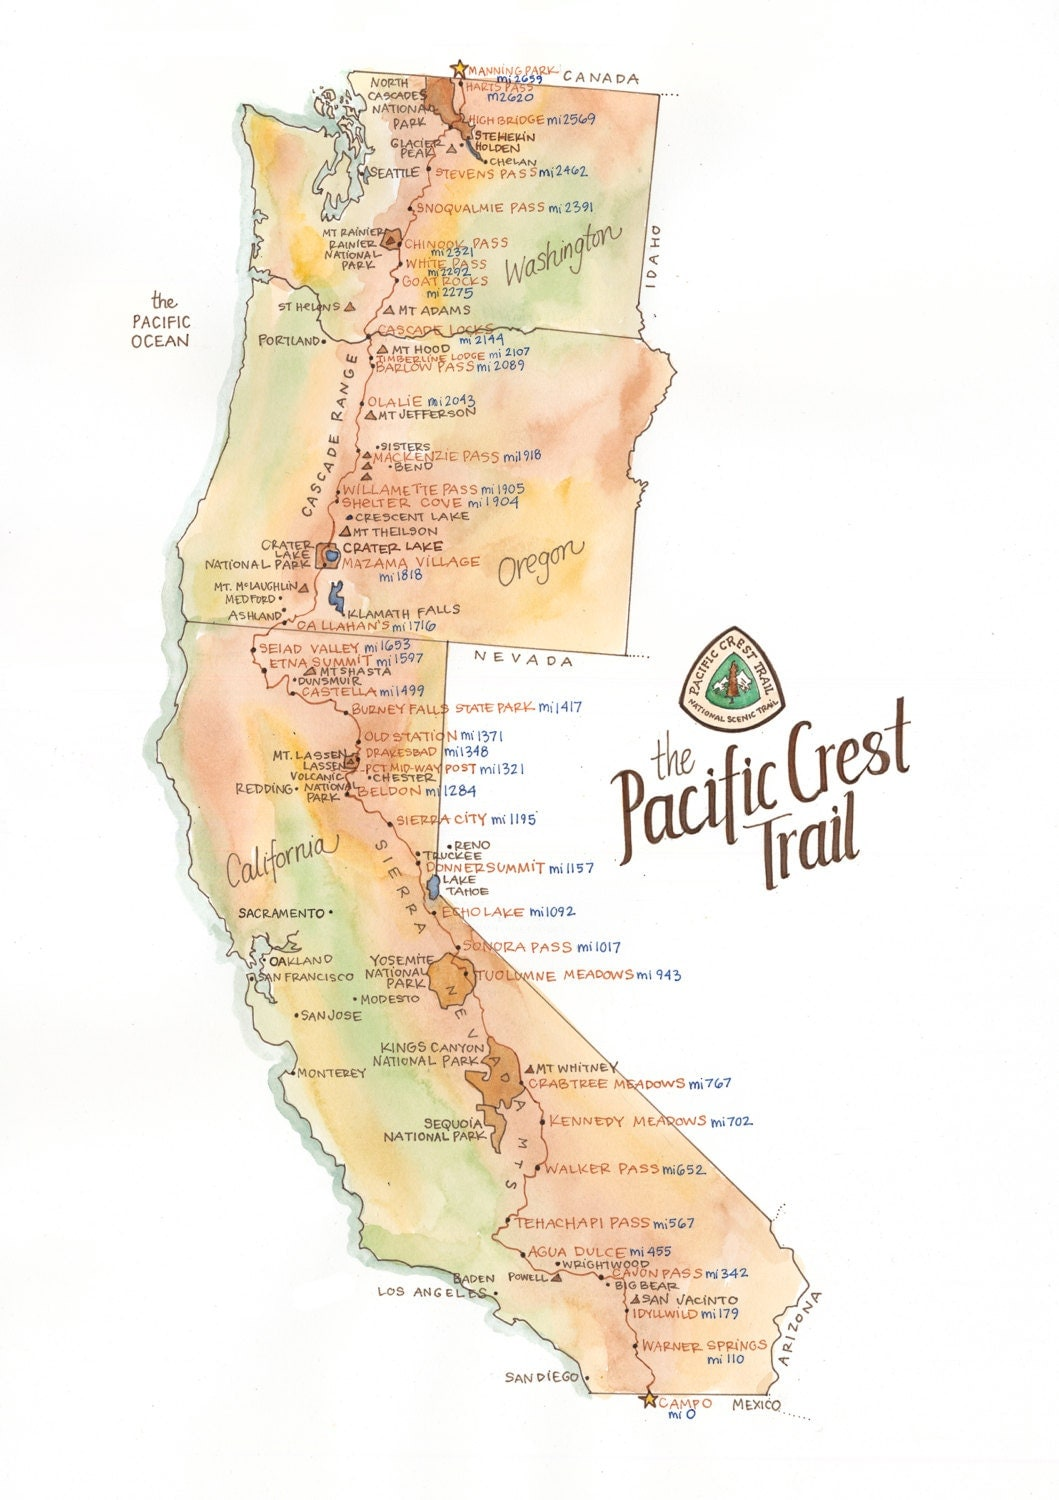 Pacific Crest Trail Map  ILLUSTRATION  11x14